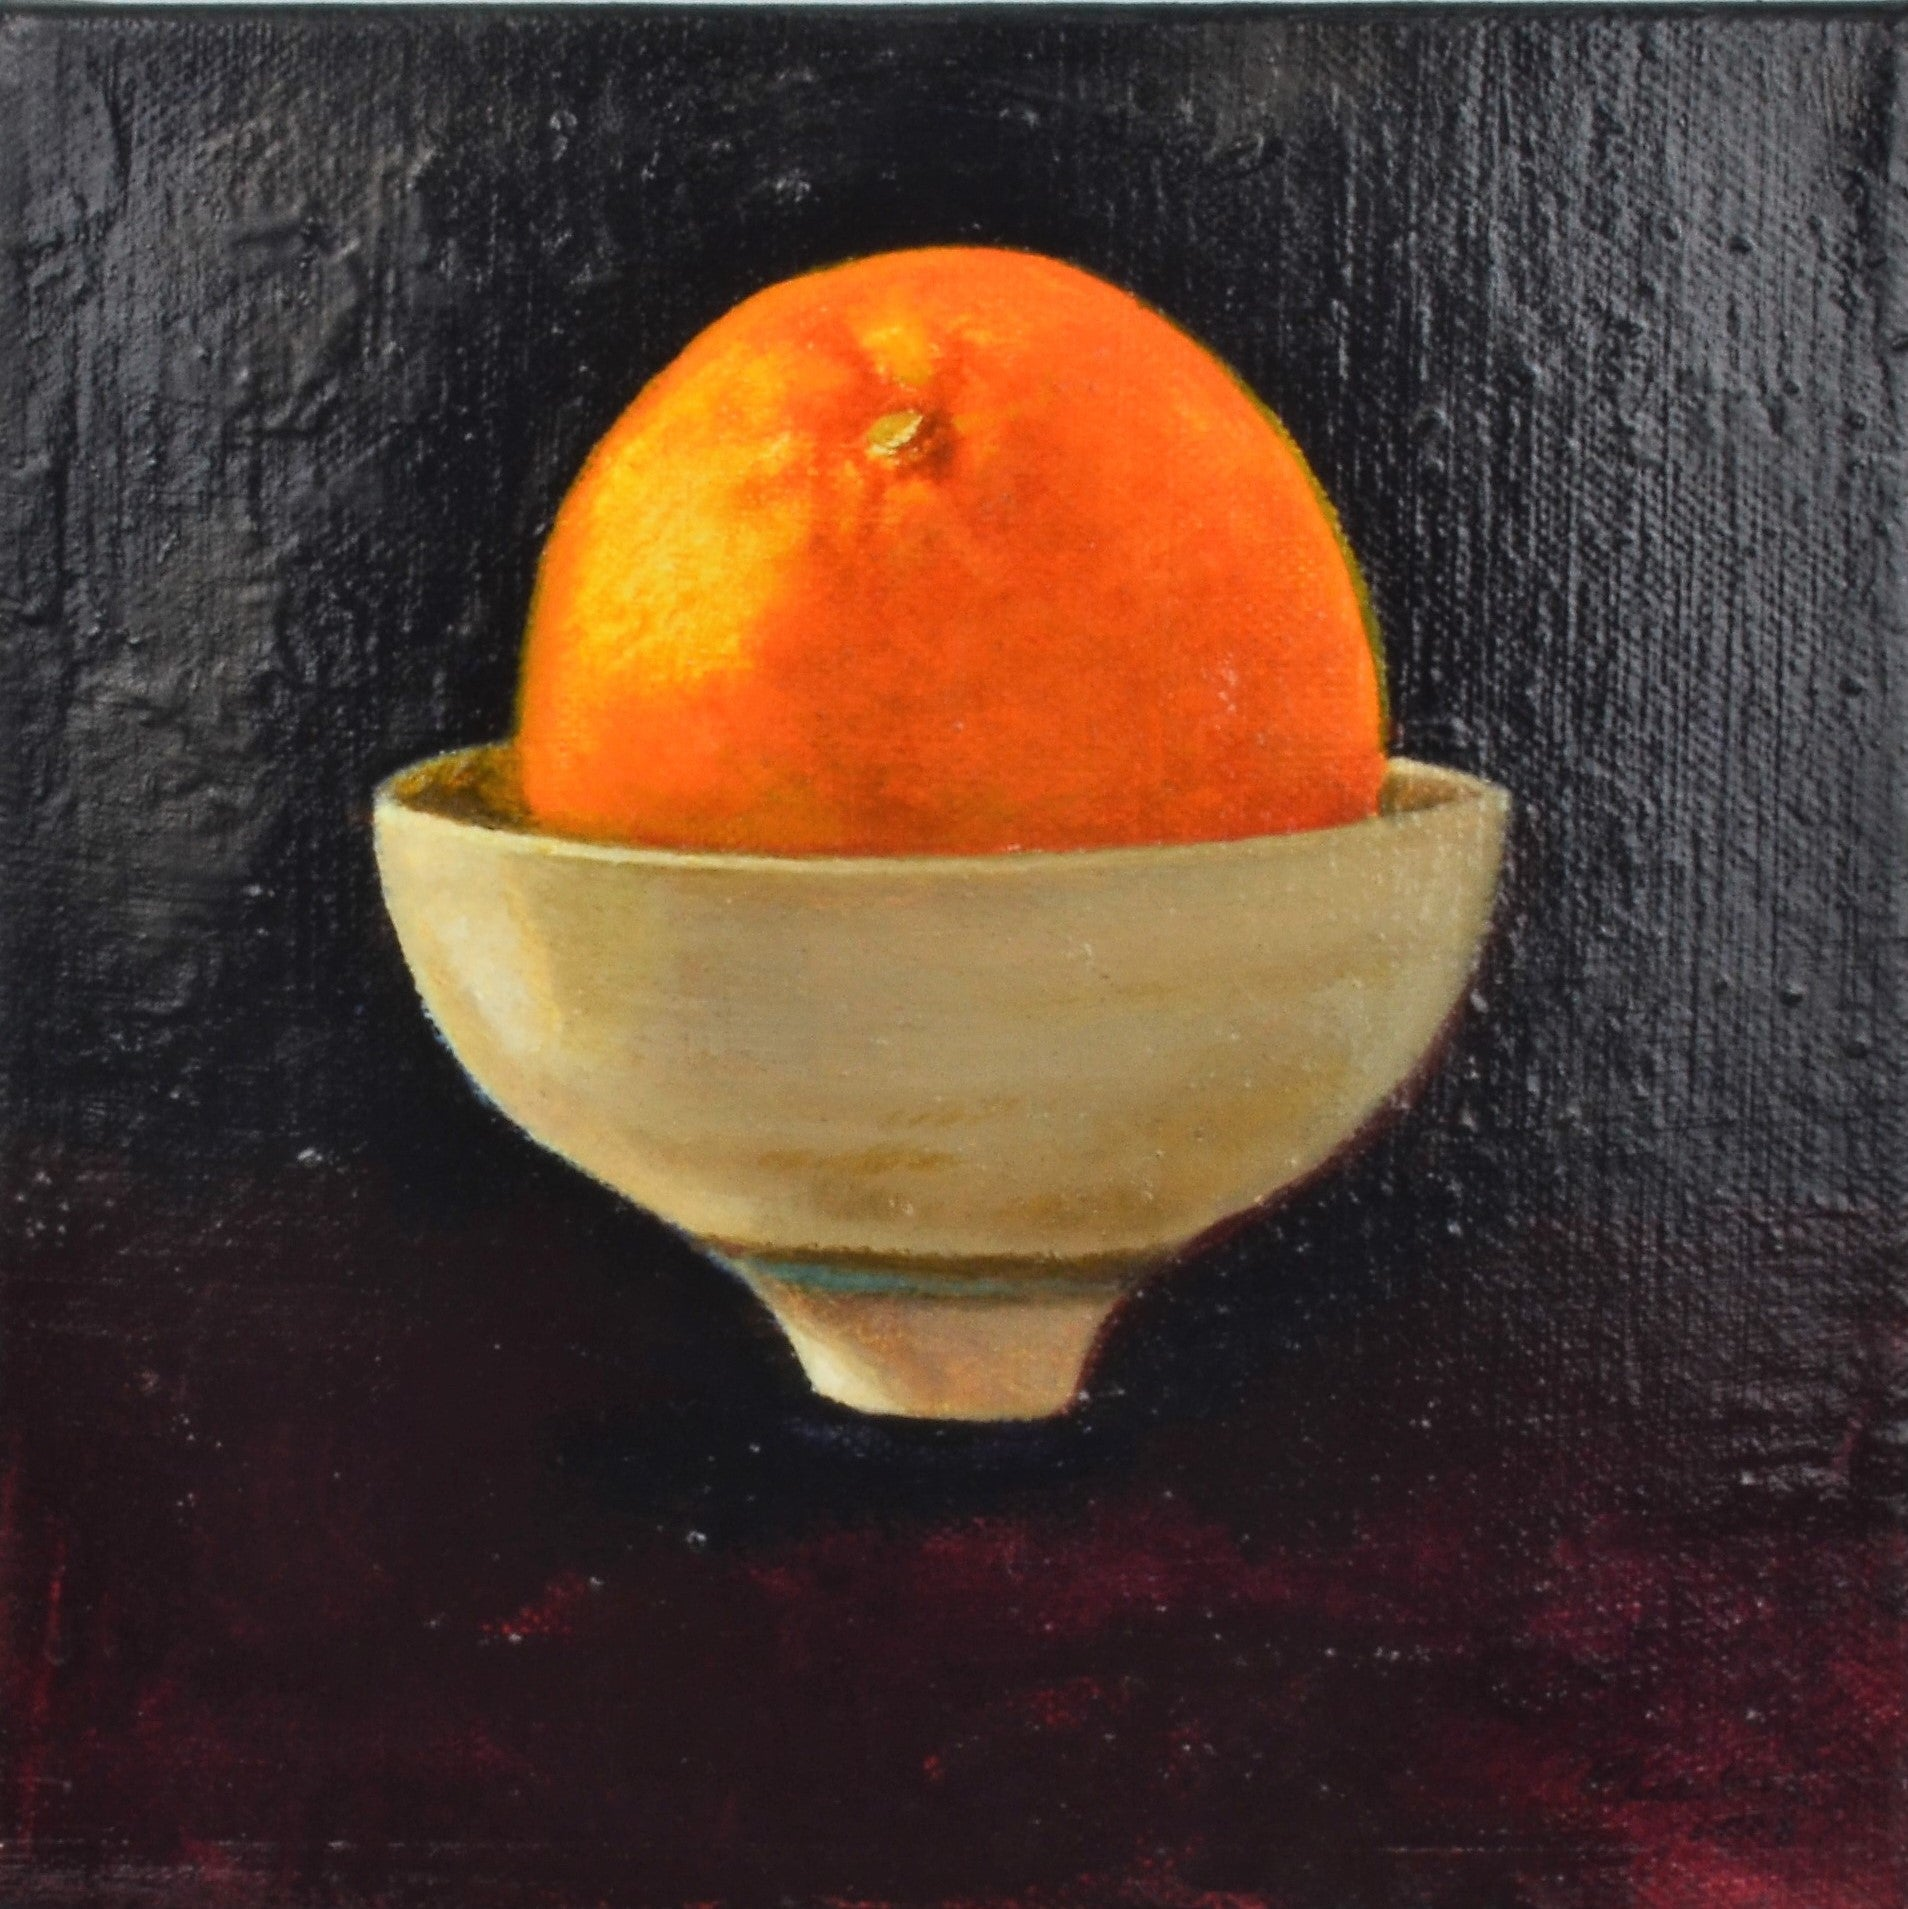 Kuehne, Judith – Orange on Will's Bowl | Judith Kuehne | Primavera Gallery